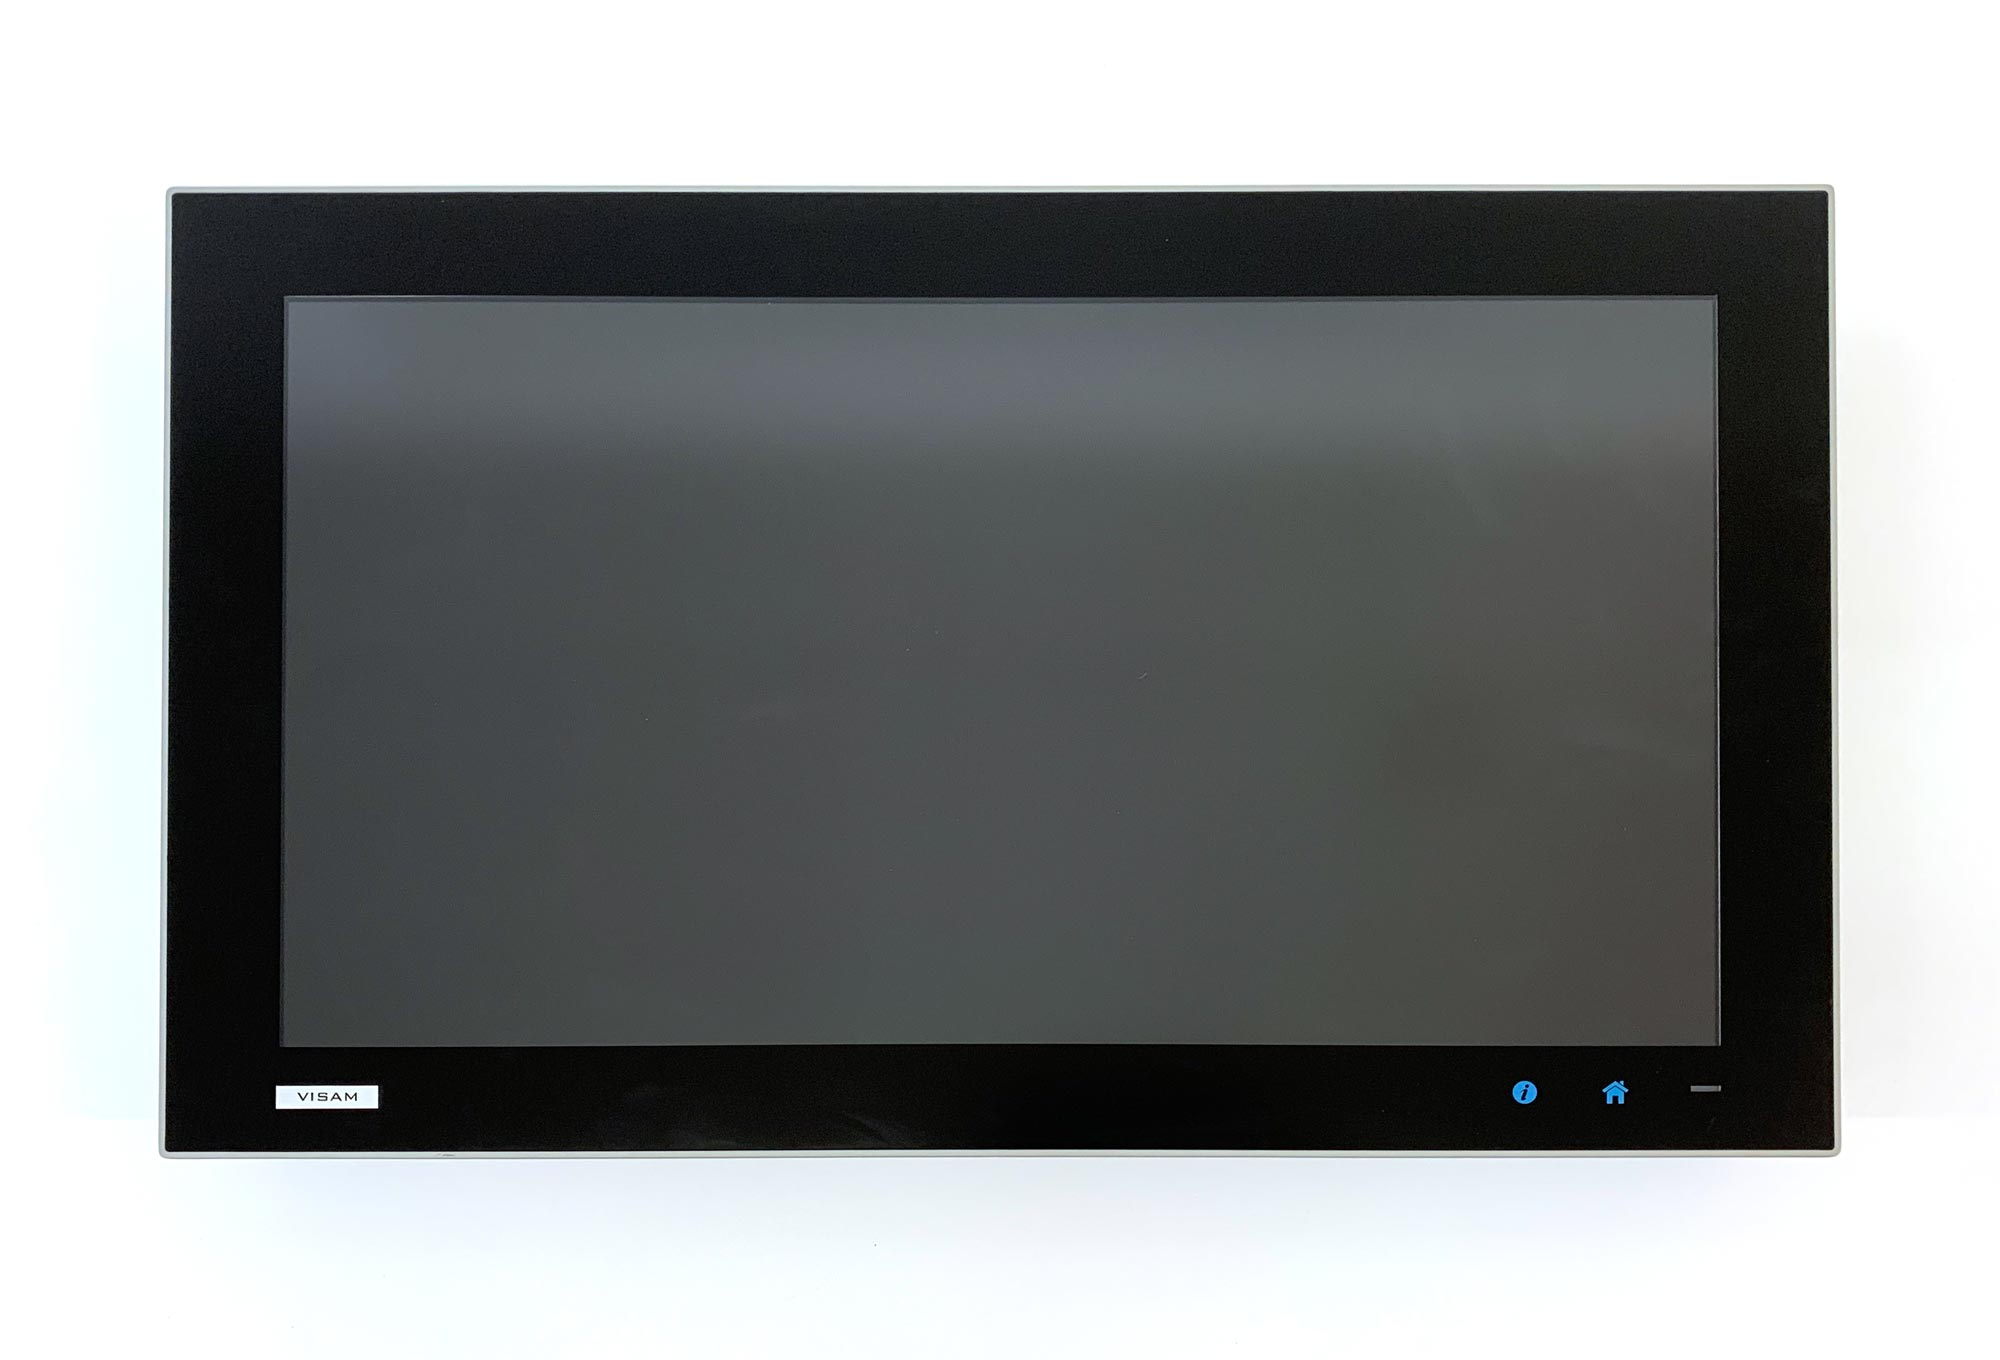 TPC-2140WP -  Touch-Panel PC mit 21,4-Zoll Widescreen Display